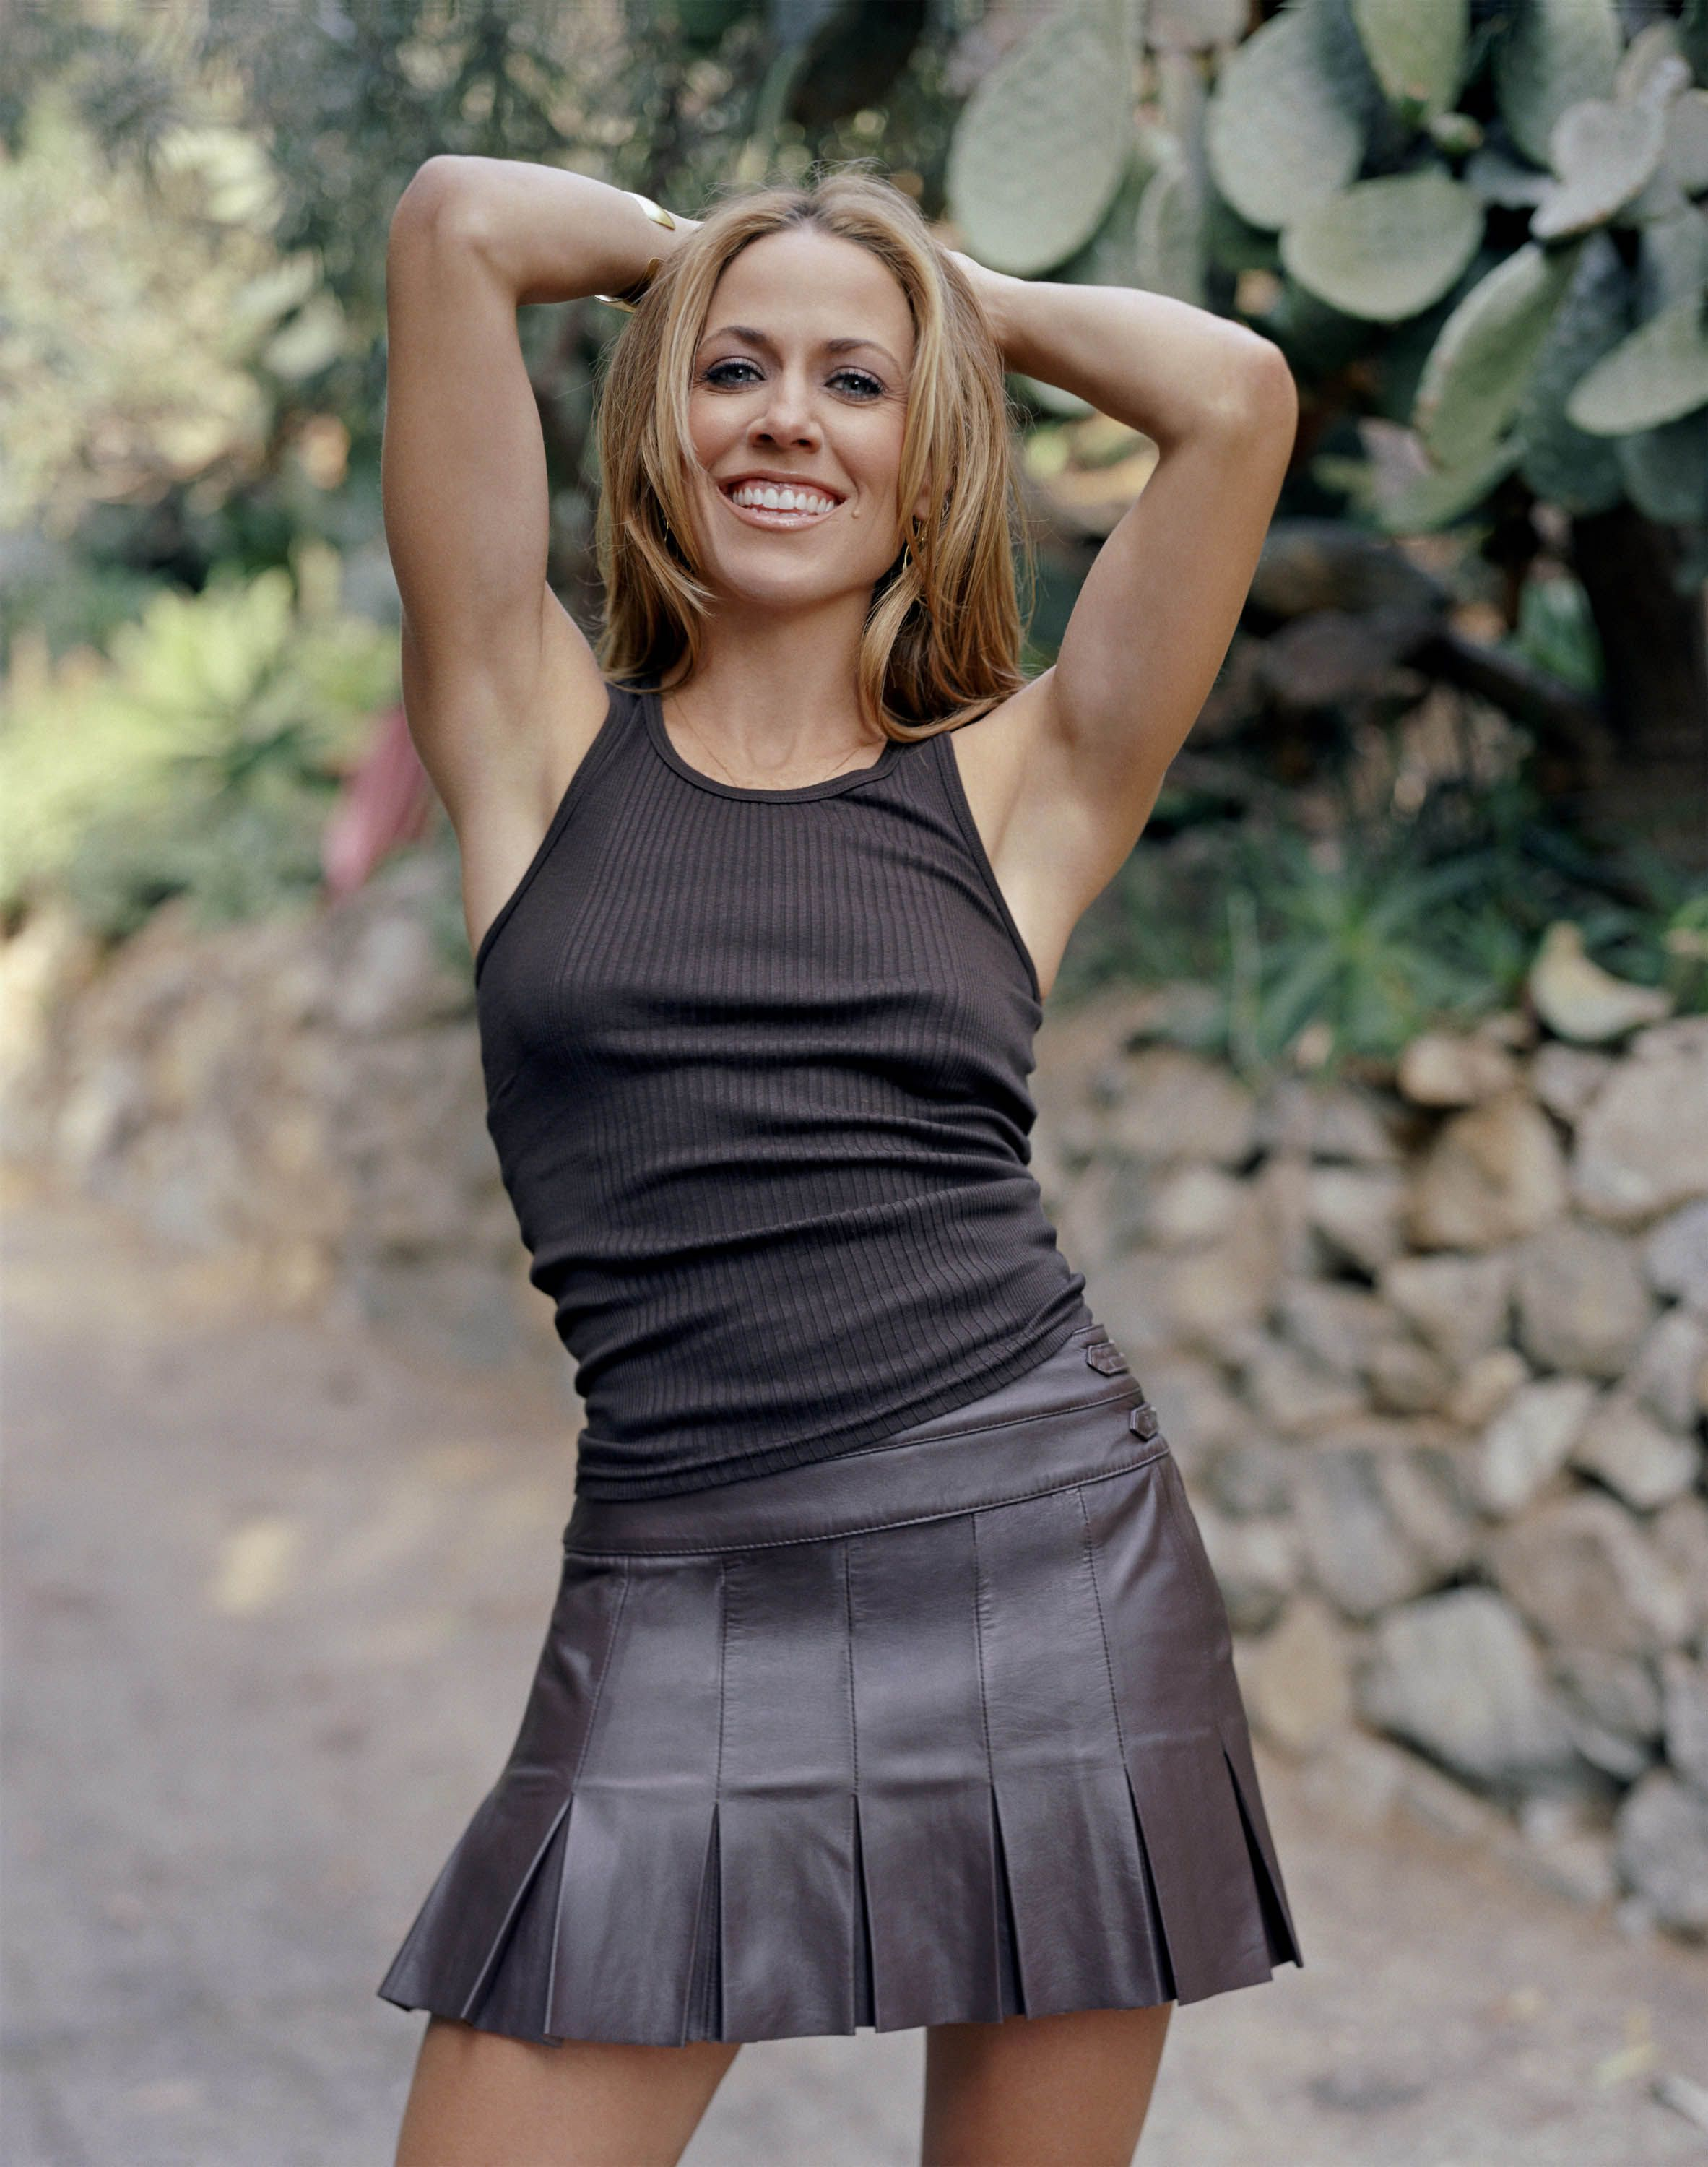 sheryl crow nude photos